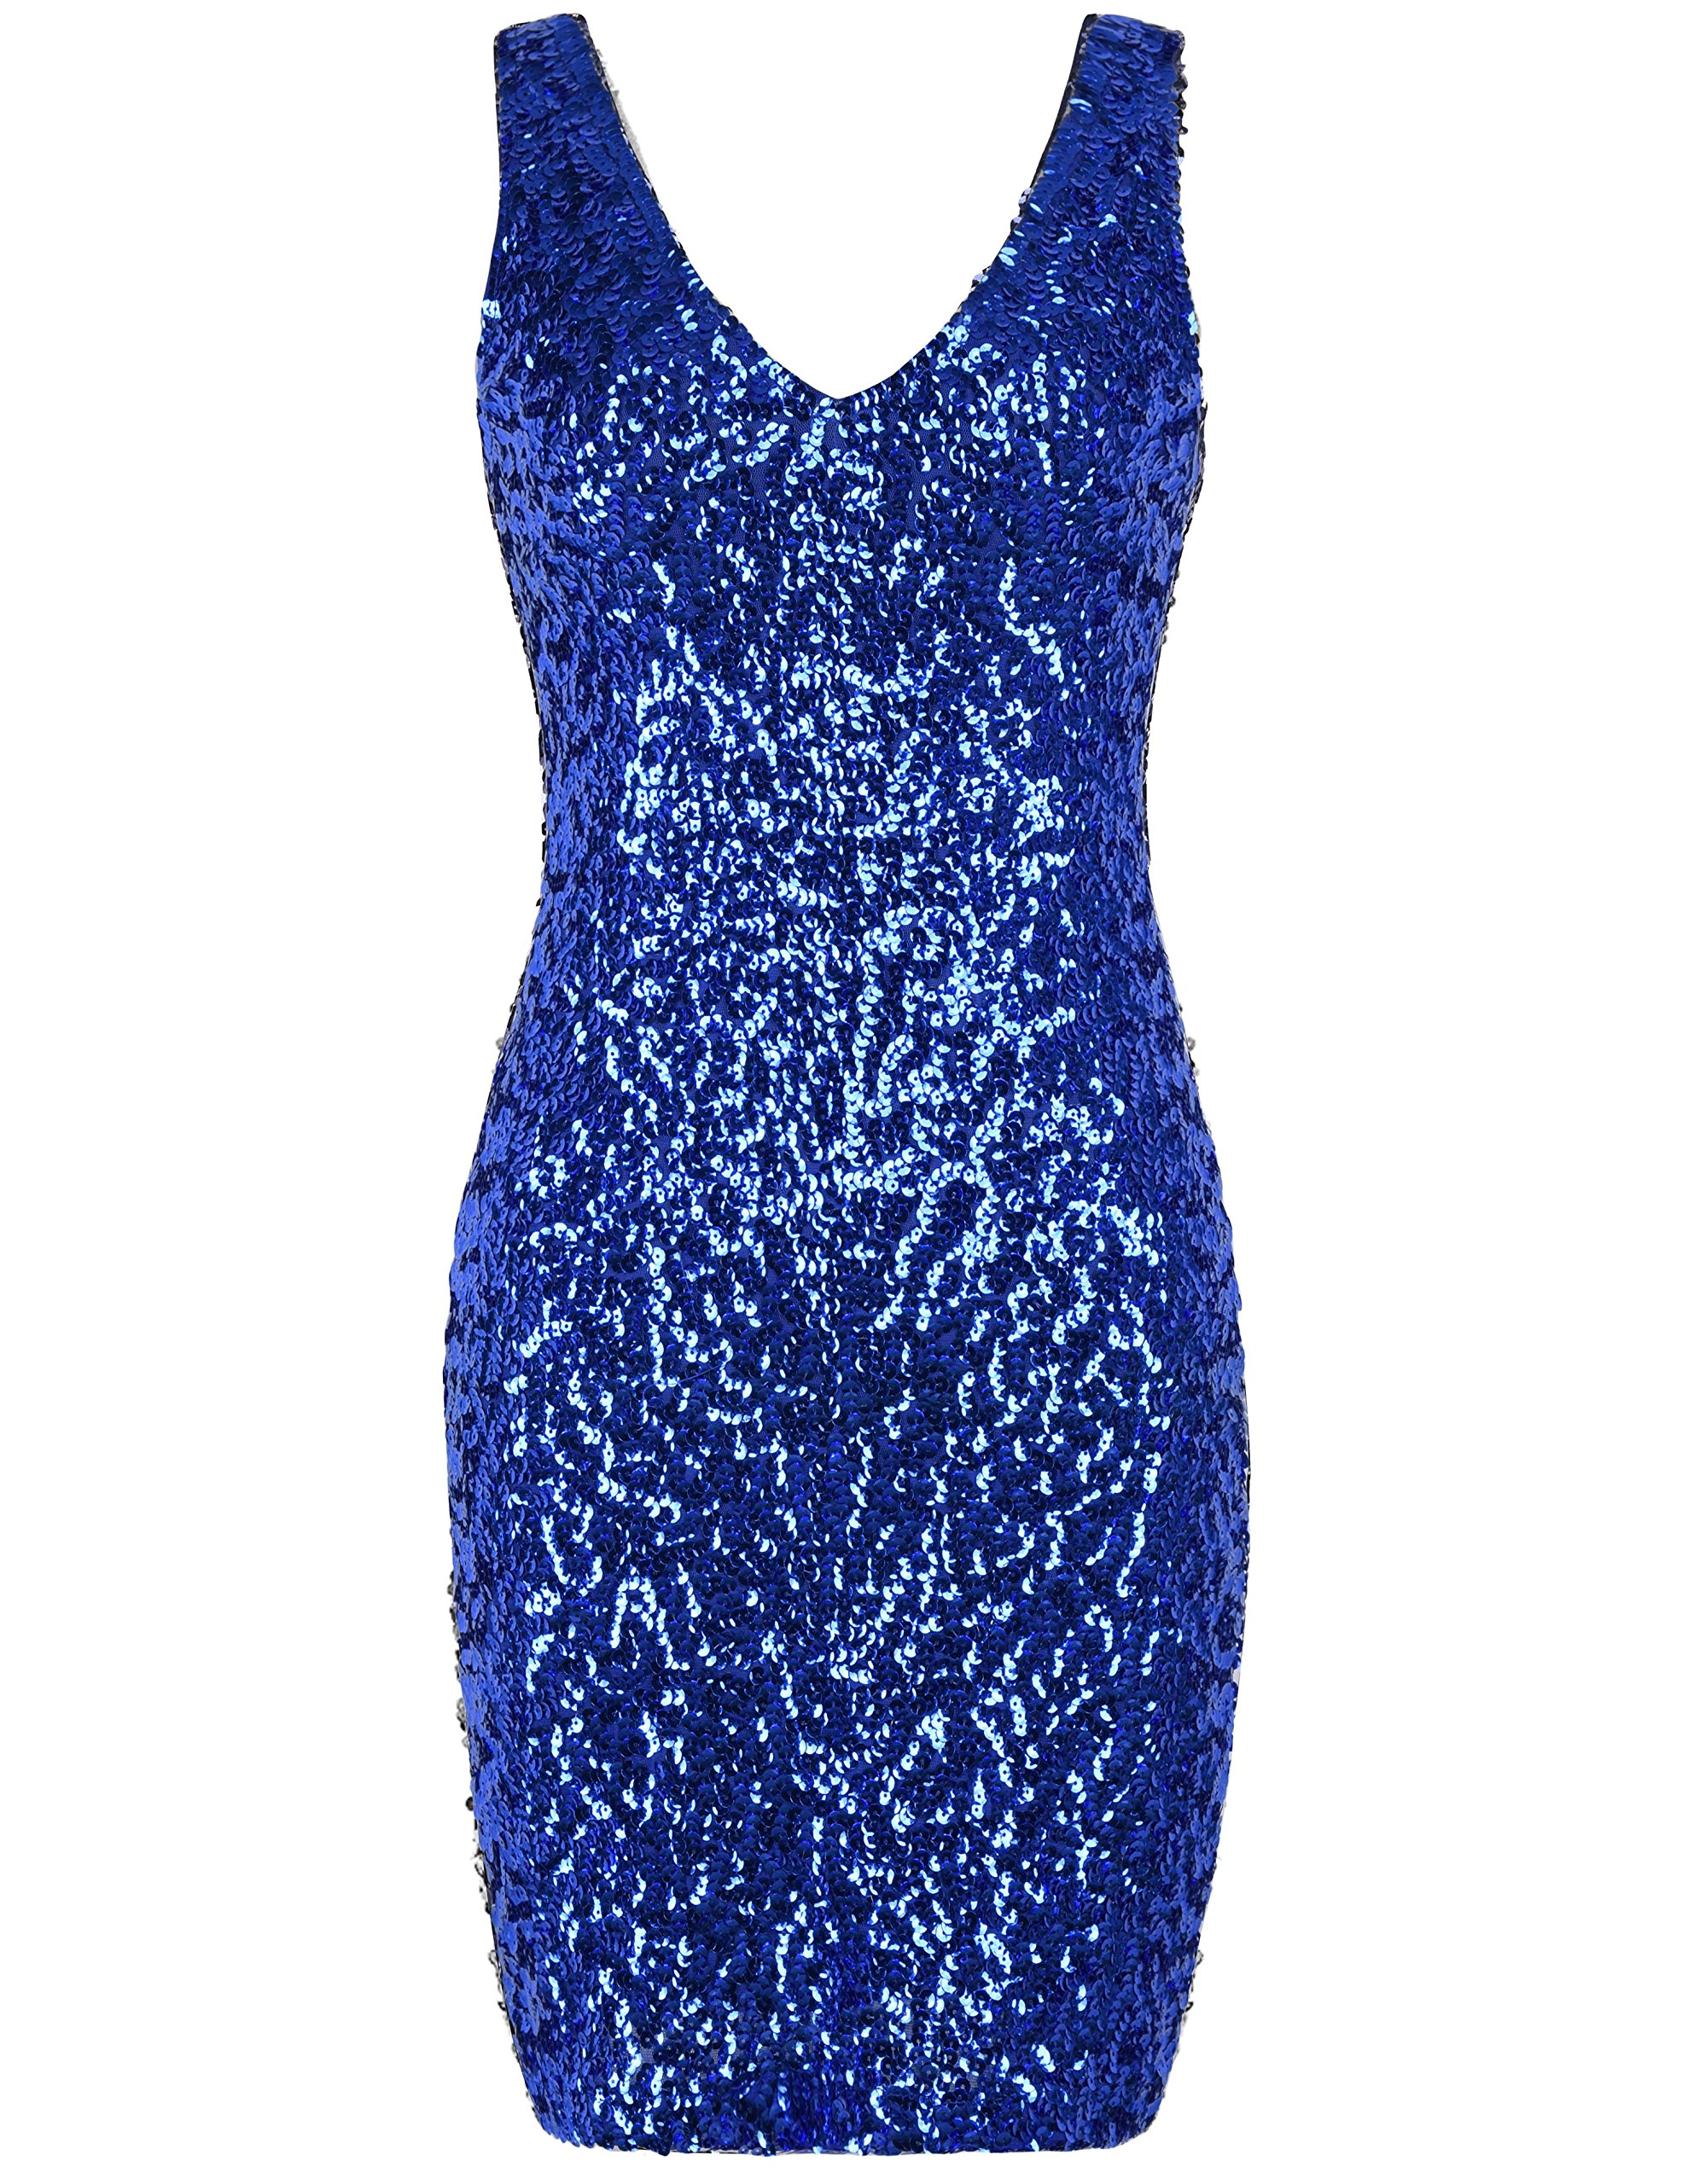 Available at Amazon: PrettyGuide Women's Sexy Deep V Neck Sequin Glitter Bodycon Stretchy Mini Party Dress